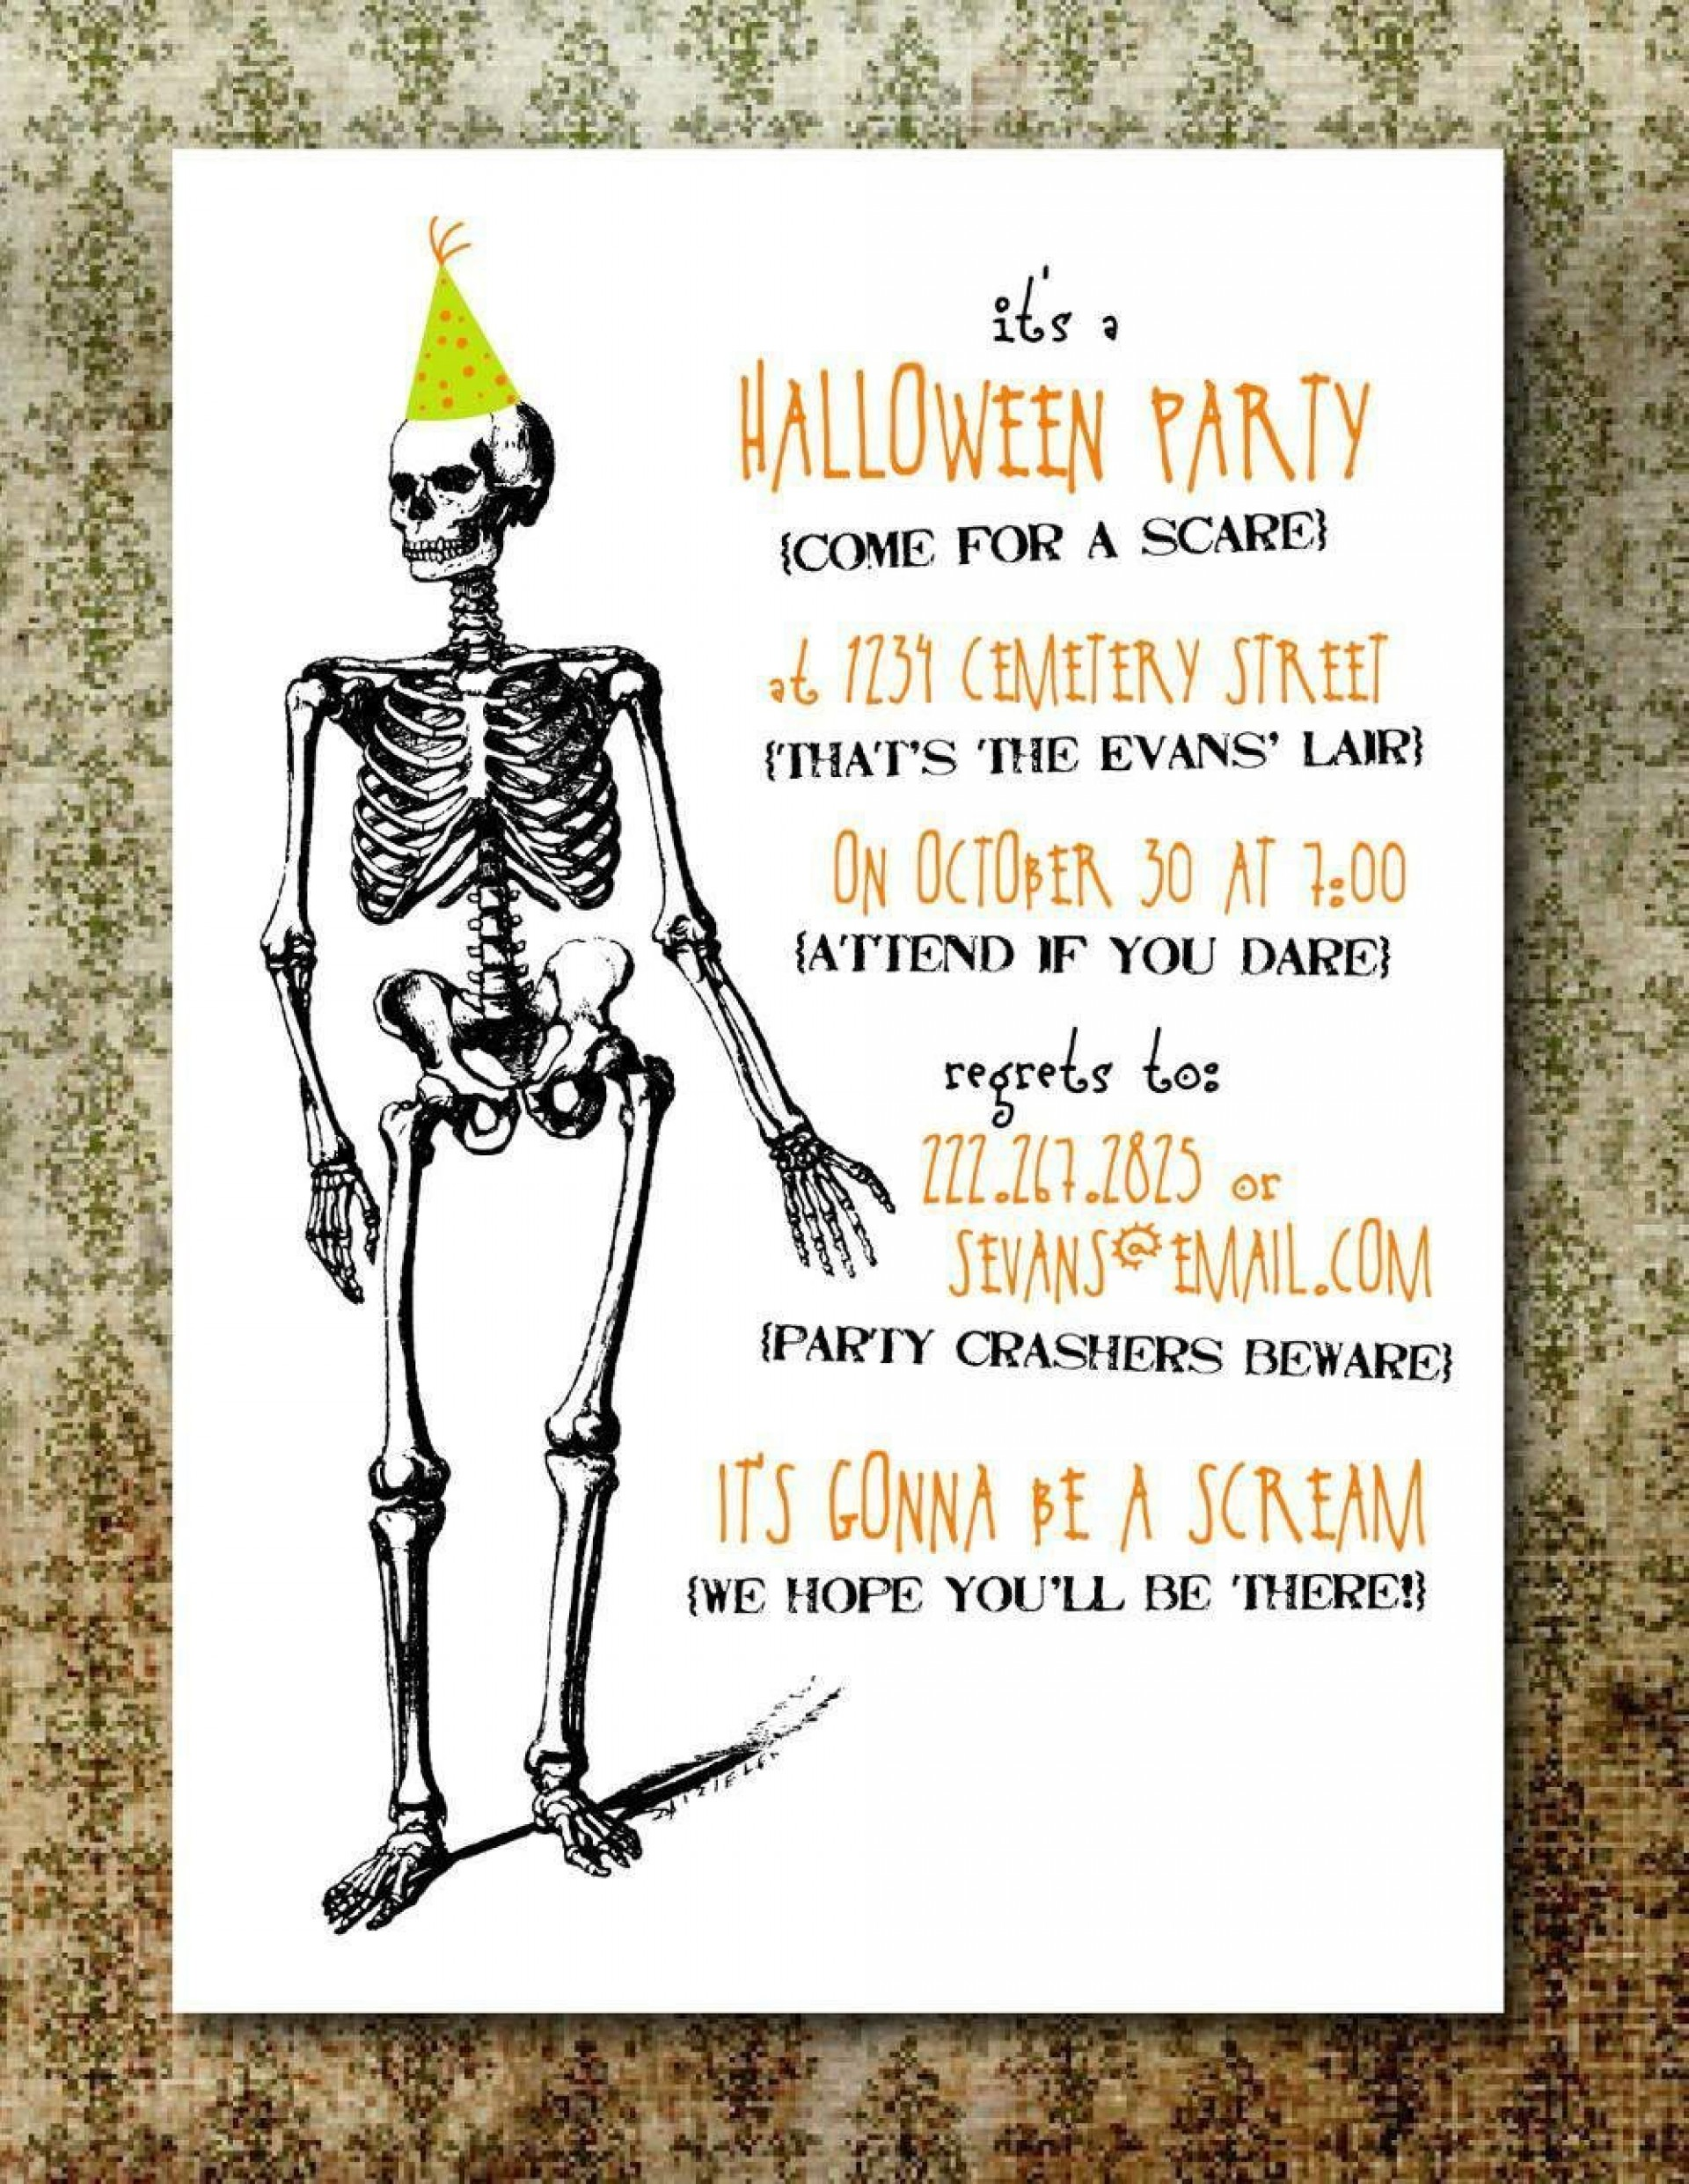 007 Excellent Halloween Party Invite Template Photo  Templates - Free Printable Spooky Invitation Birthday1920